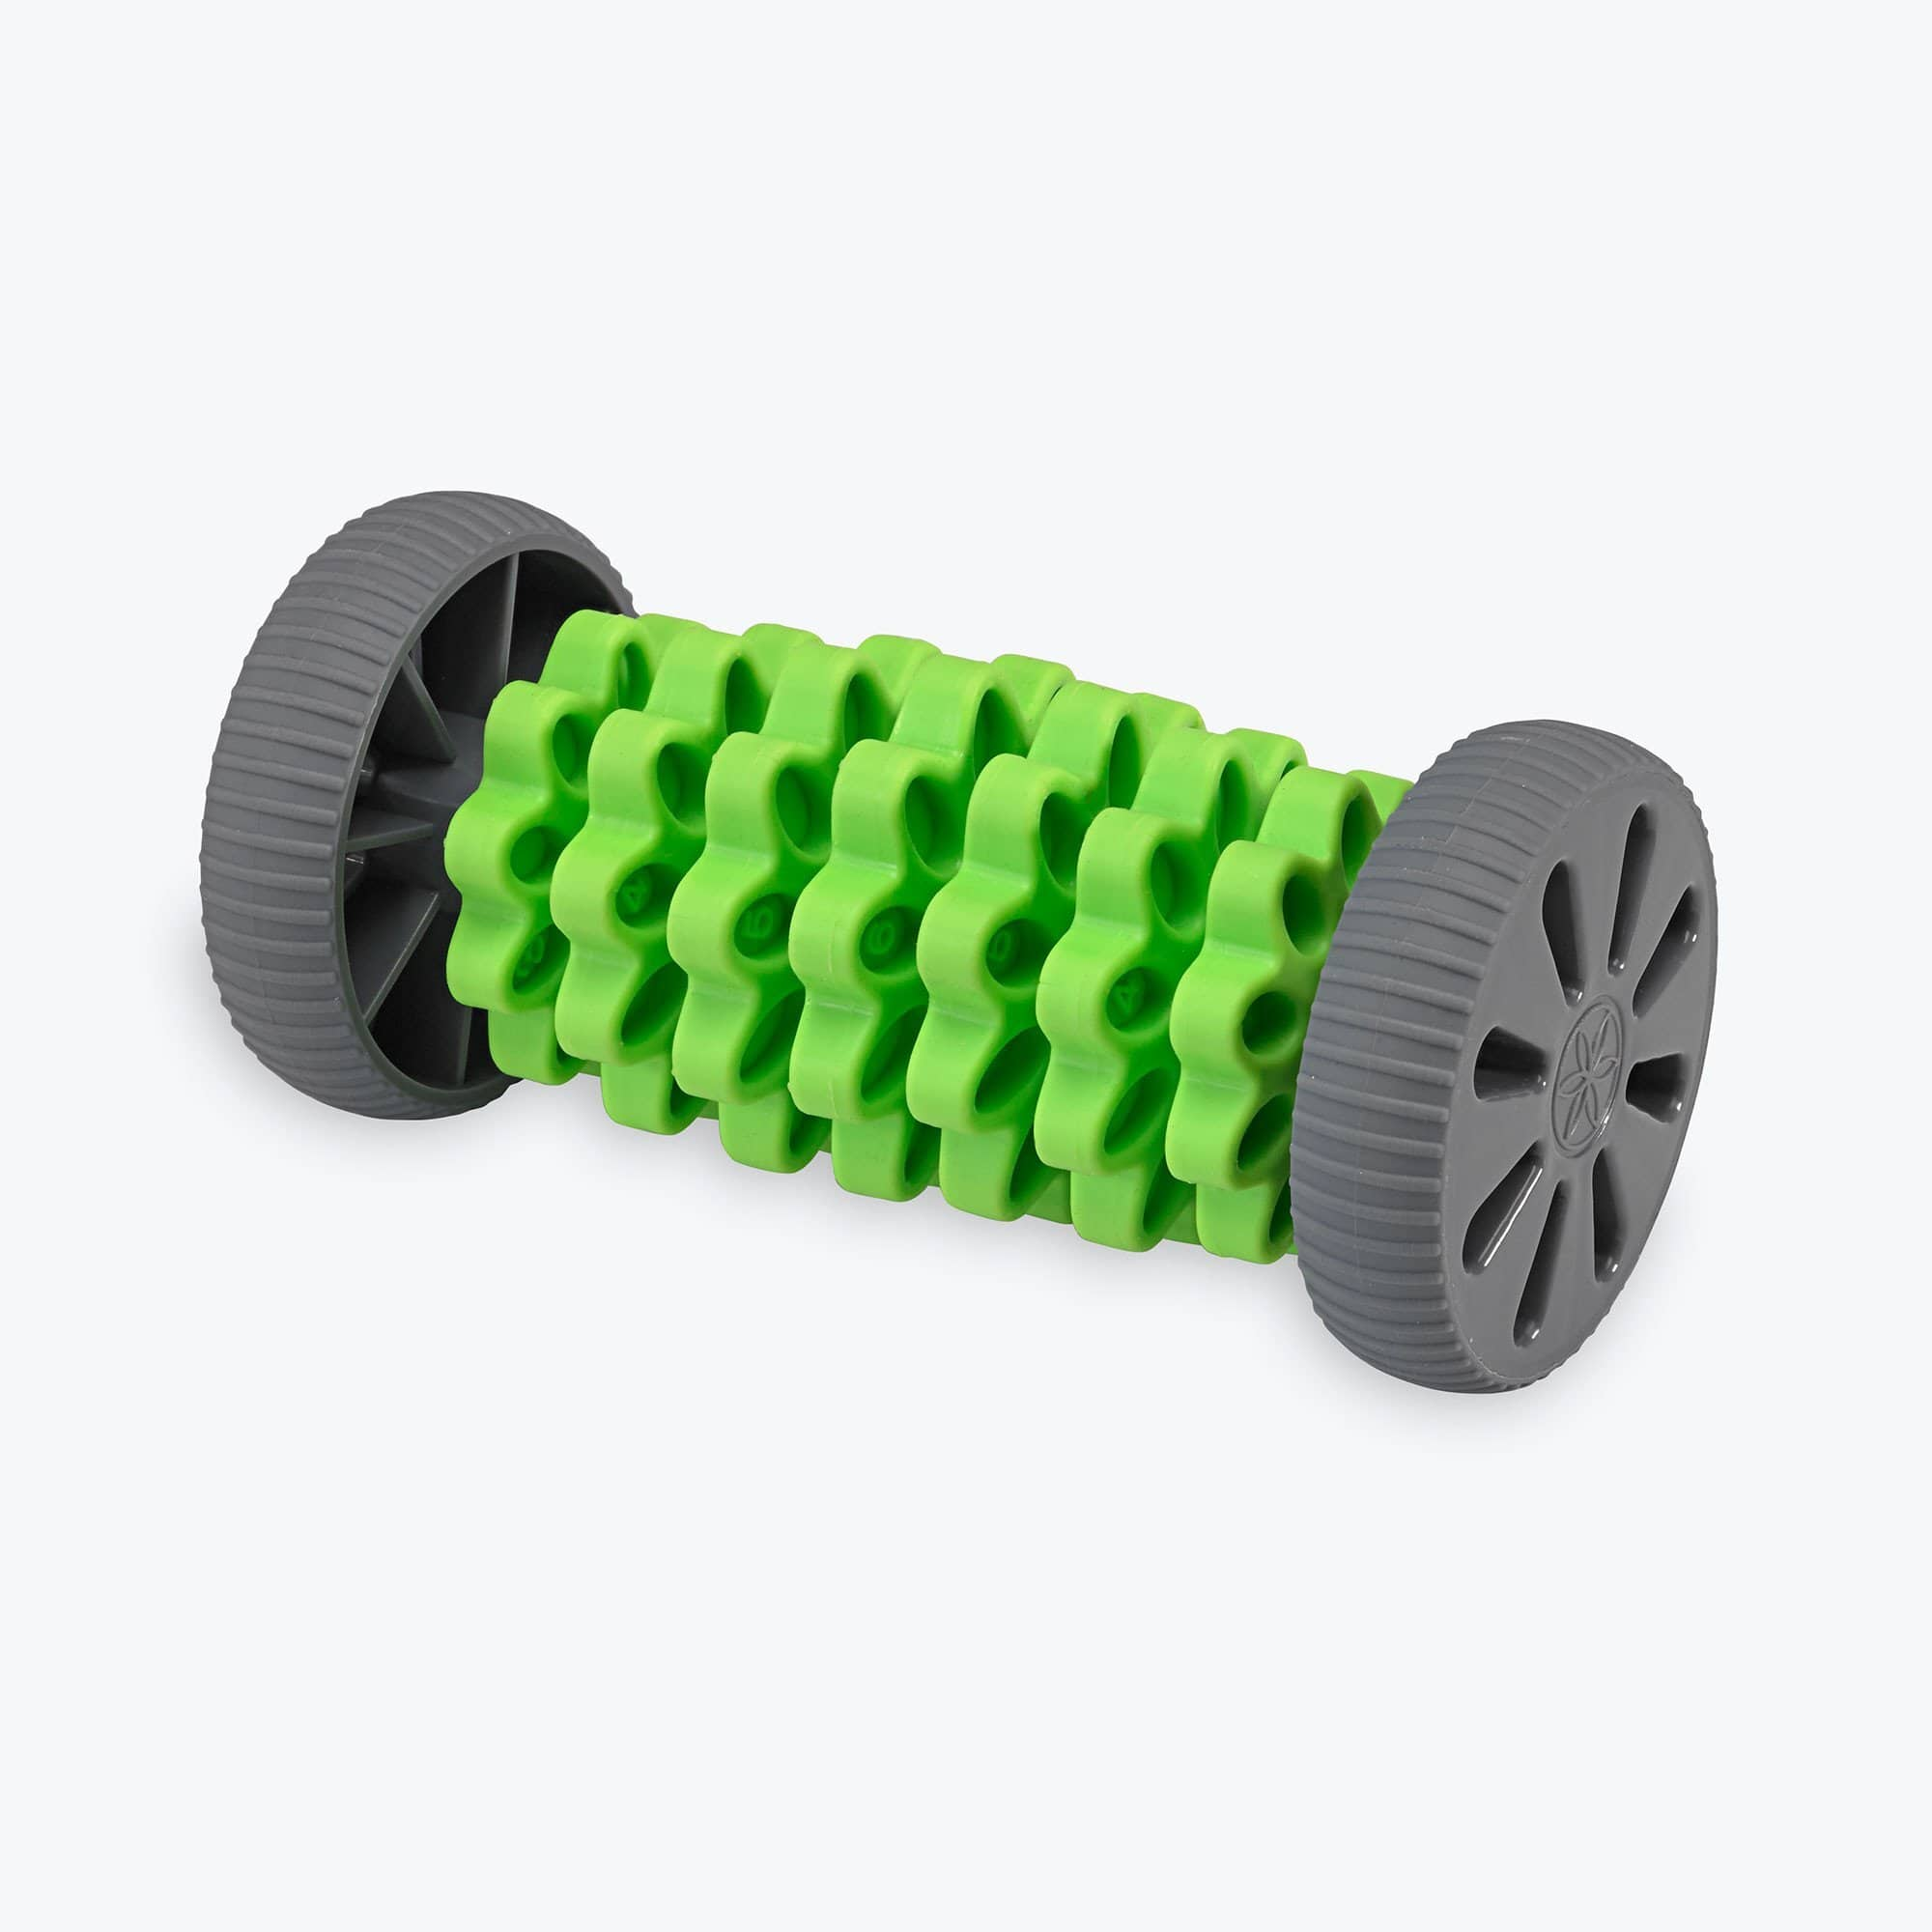 Gaiam Restore Adjustable Foot Roller Exercise Roller;  Pack of 2